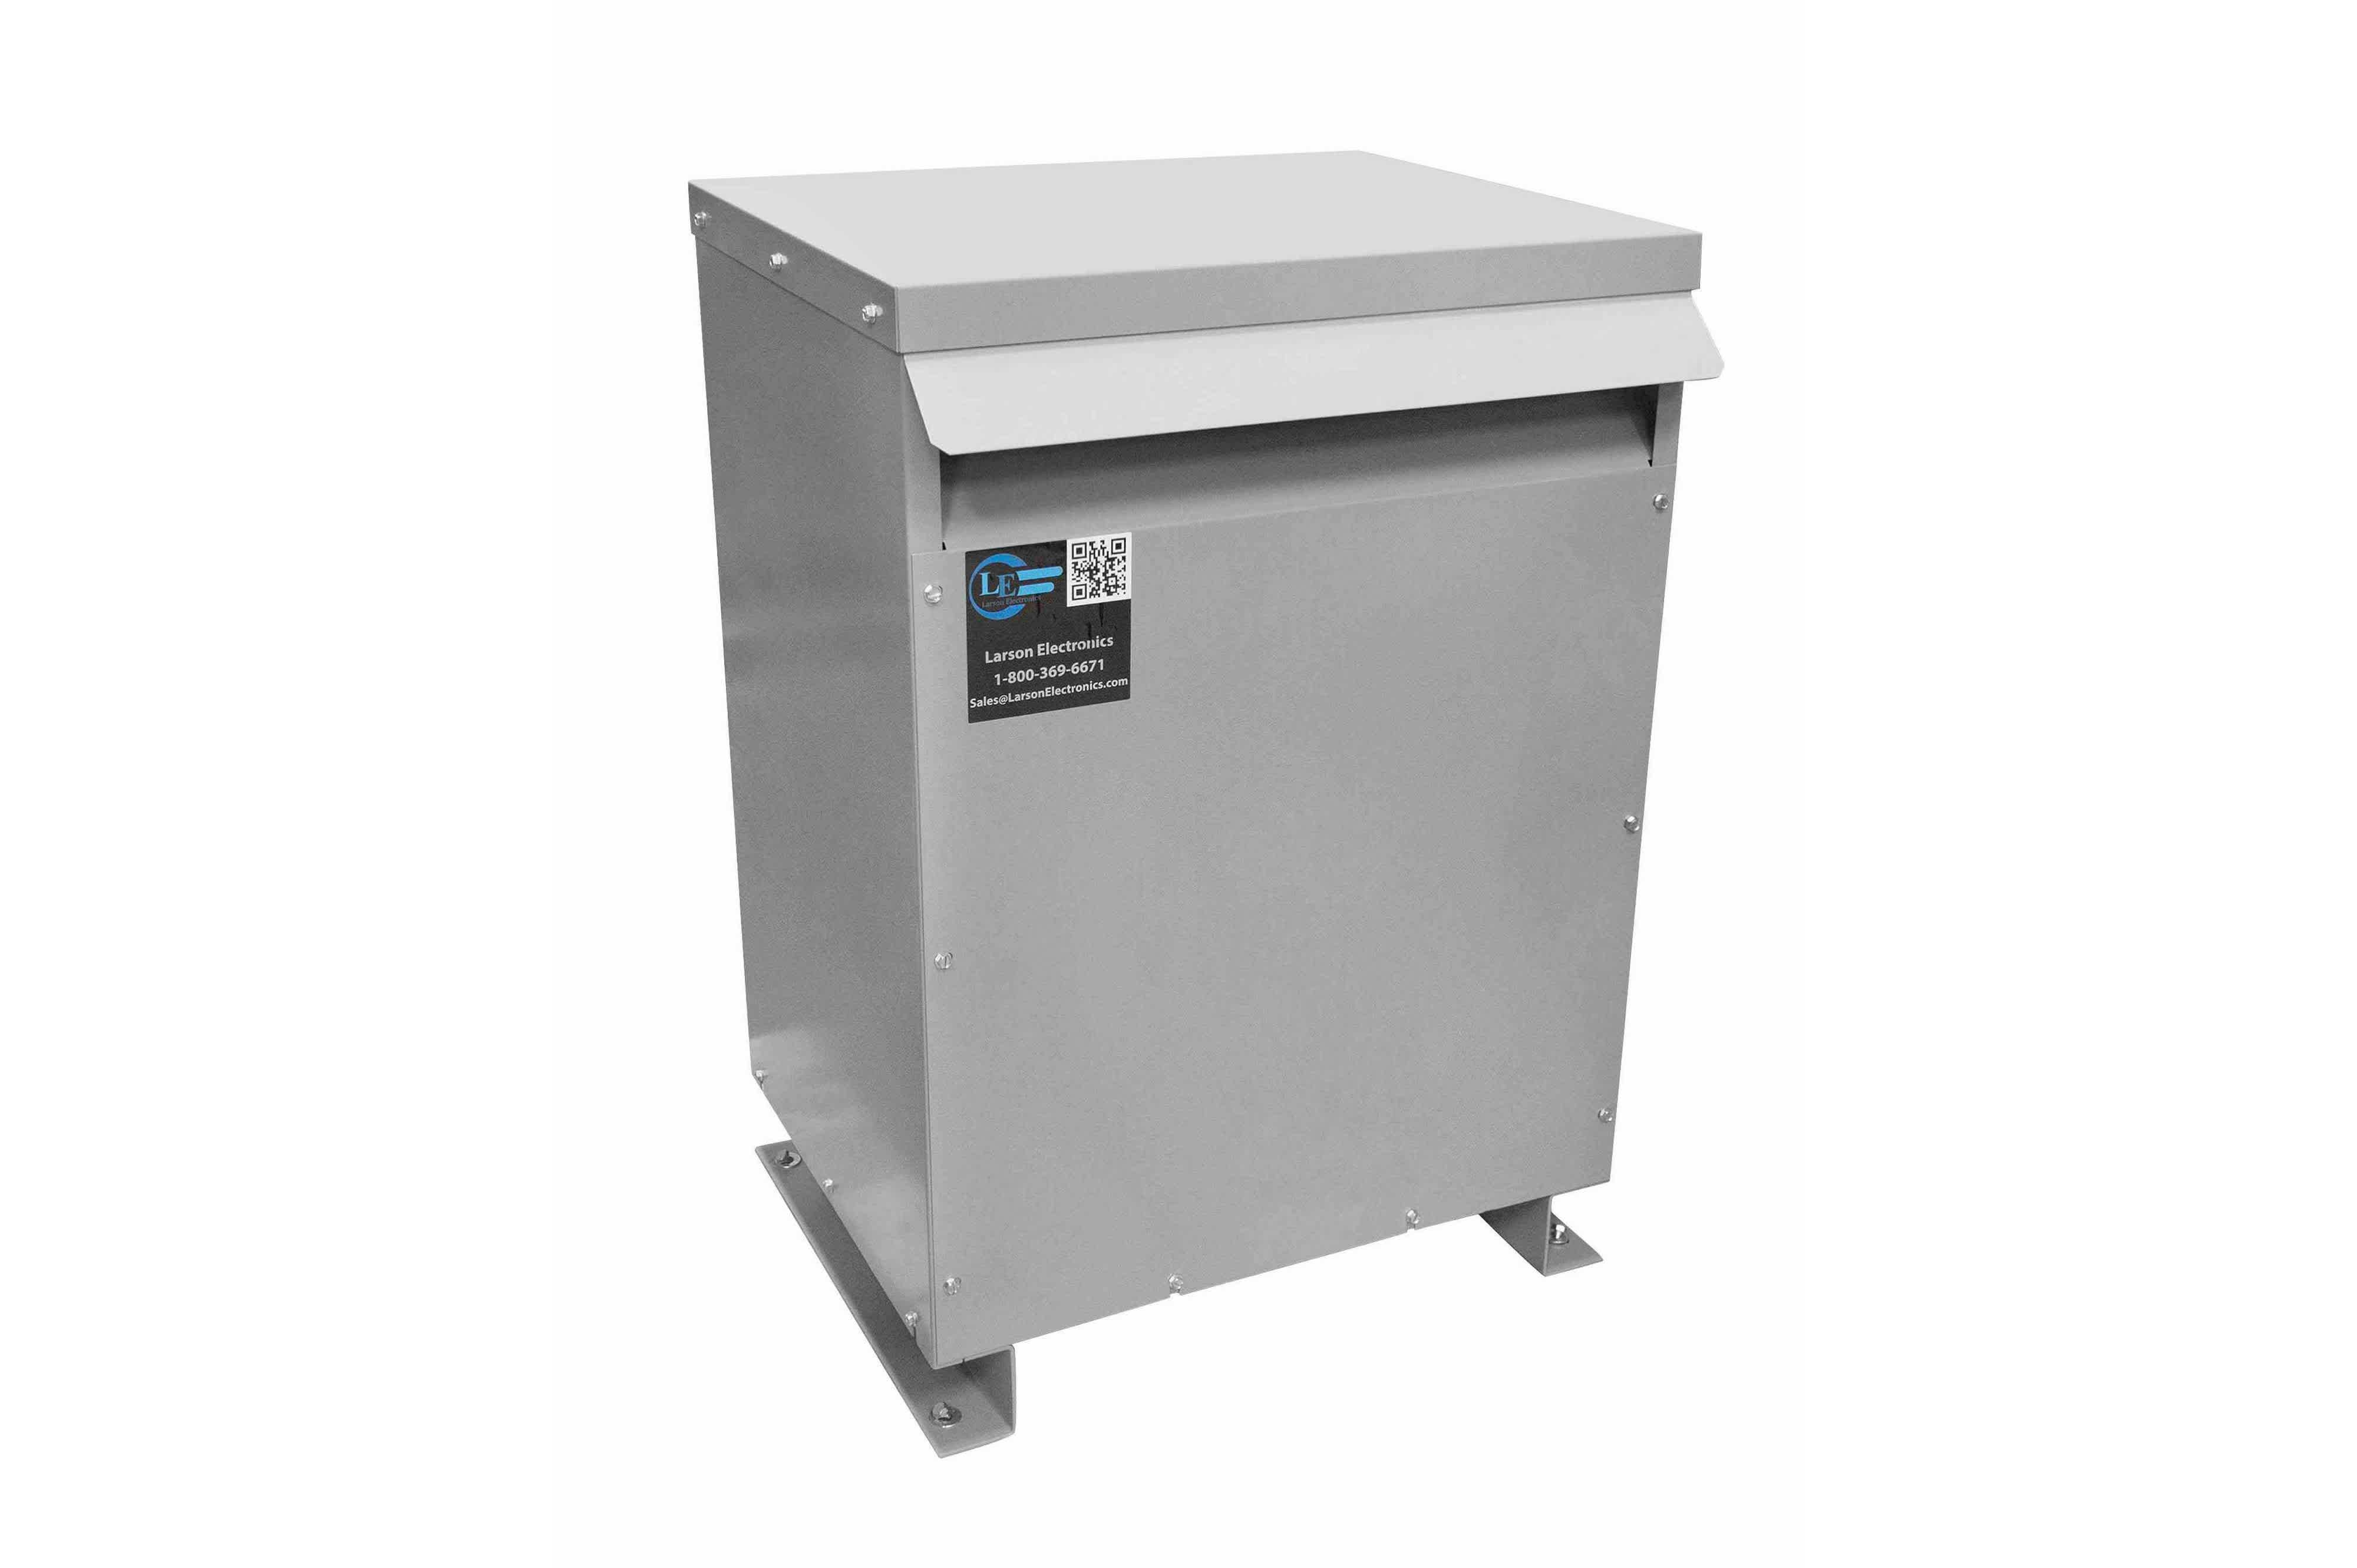 28 kVA 3PH Isolation Transformer, 208V Wye Primary, 380Y/220 Wye-N Secondary, N3R, Ventilated, 60 Hz